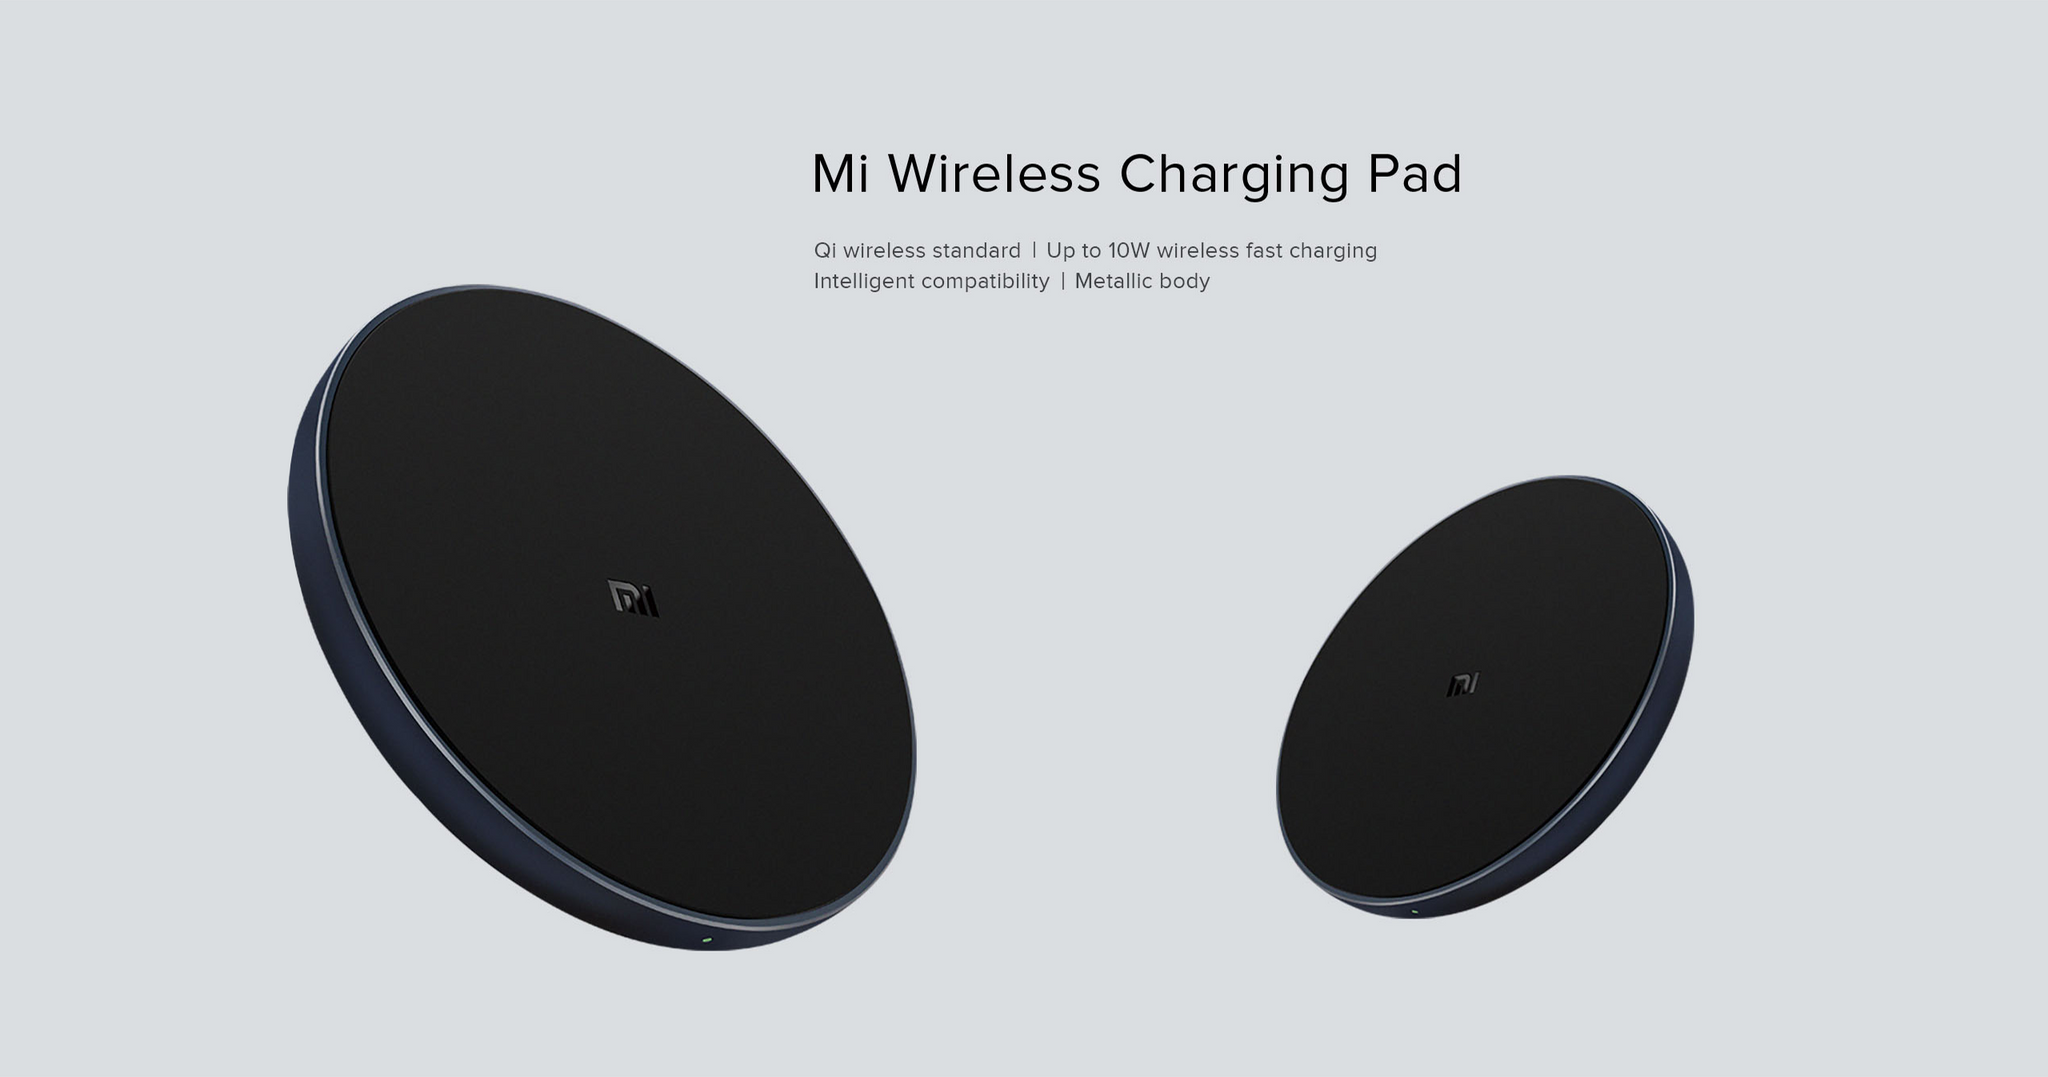 MI - Wireless Charging Pad